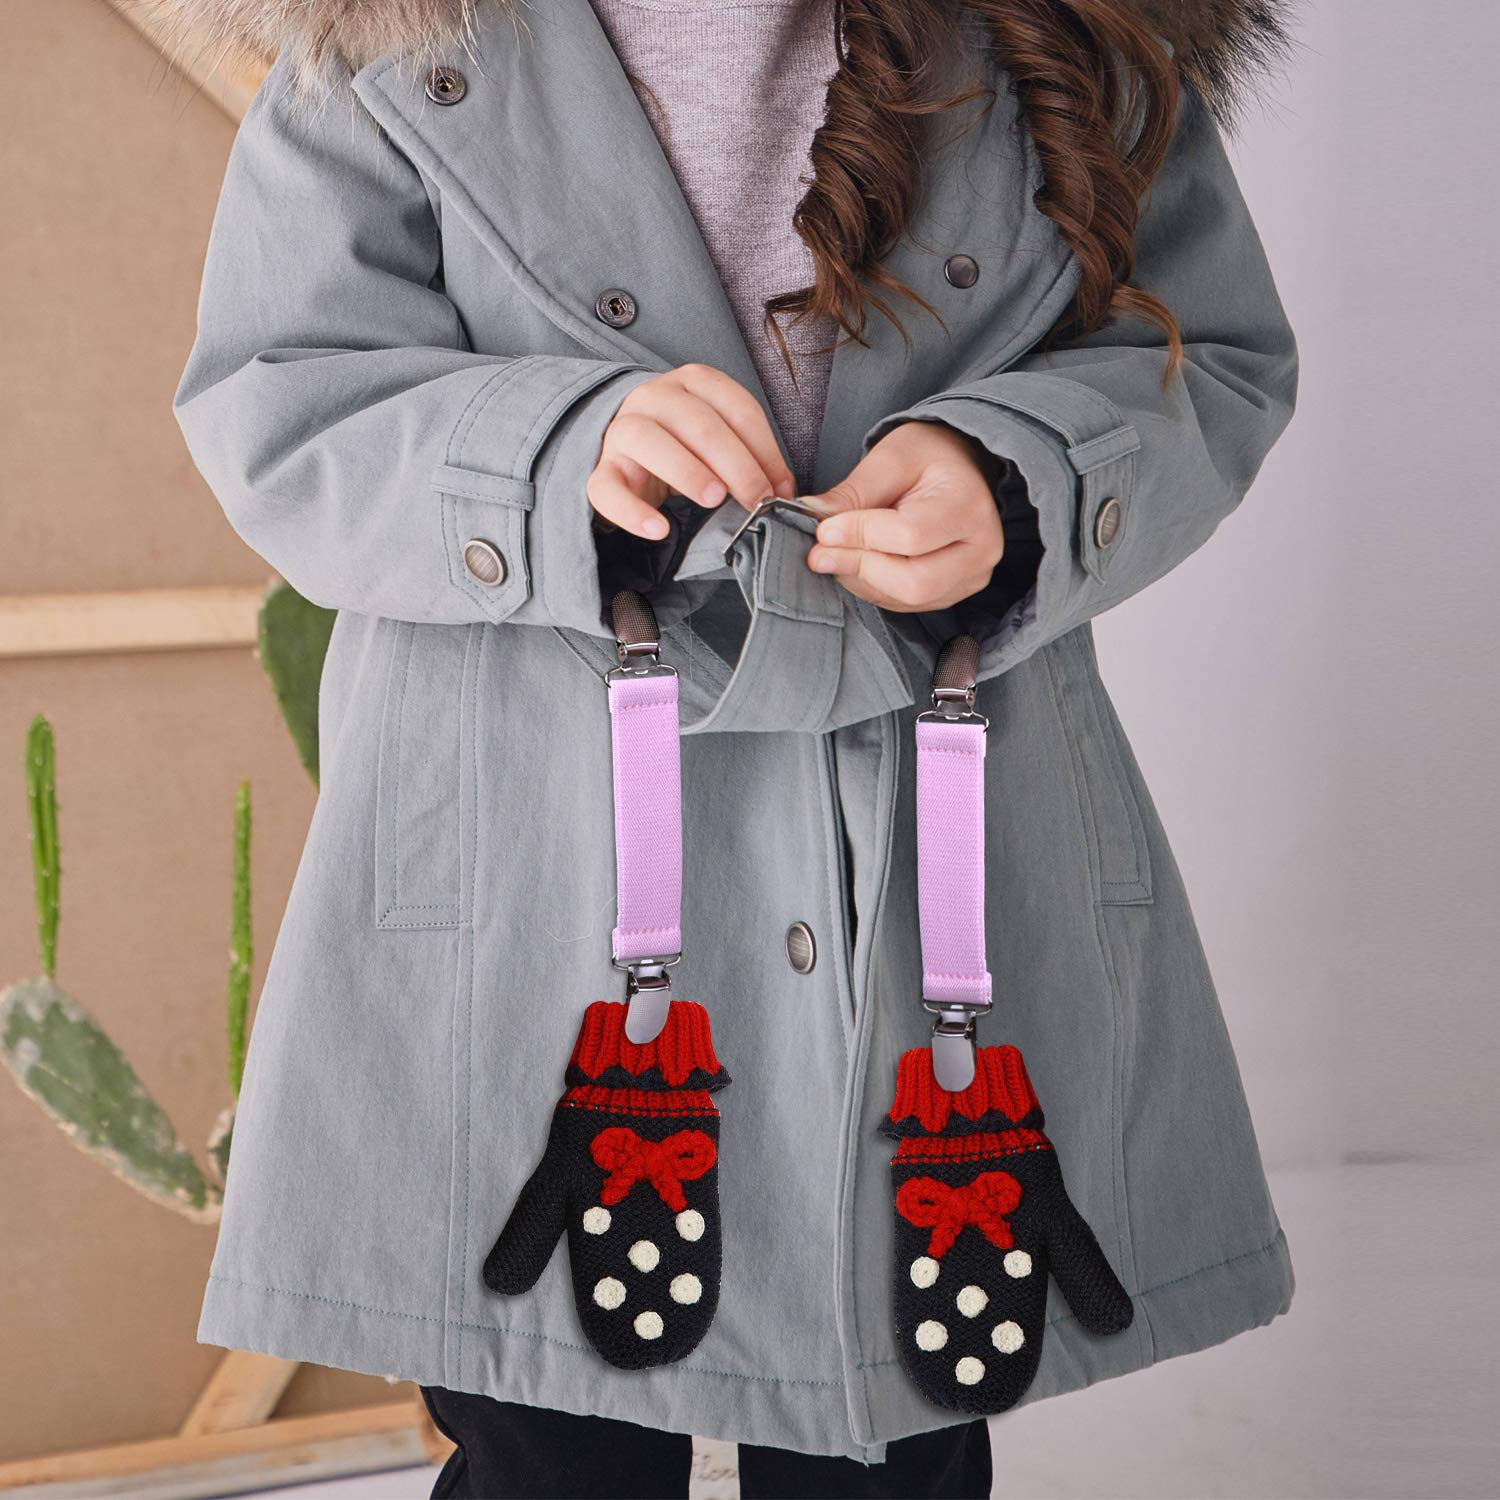 Wisdompro Glove Clips Toddle and Adults 4 Pieces Mitten Clips with Elastic Straps for Kids